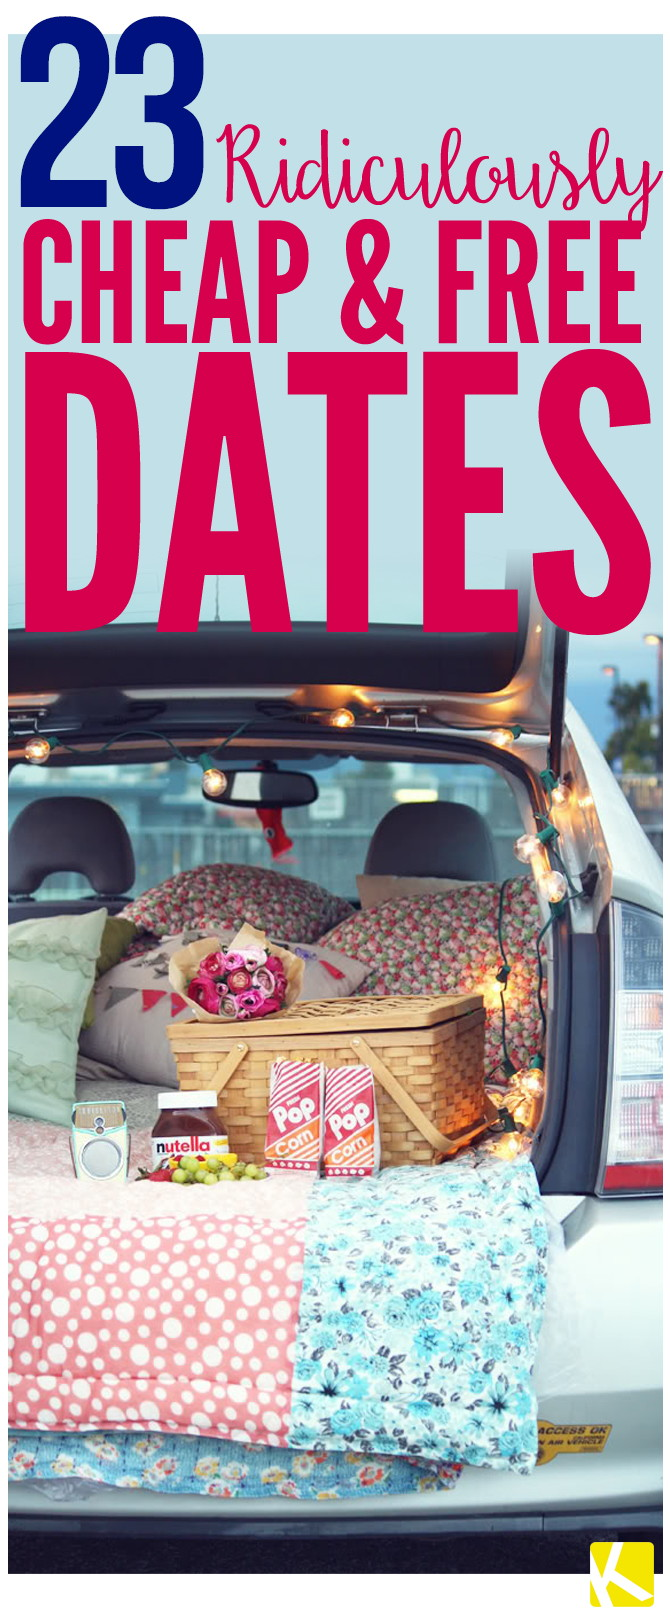 23 Ridiculously Cheap (and Free) Date Ideas